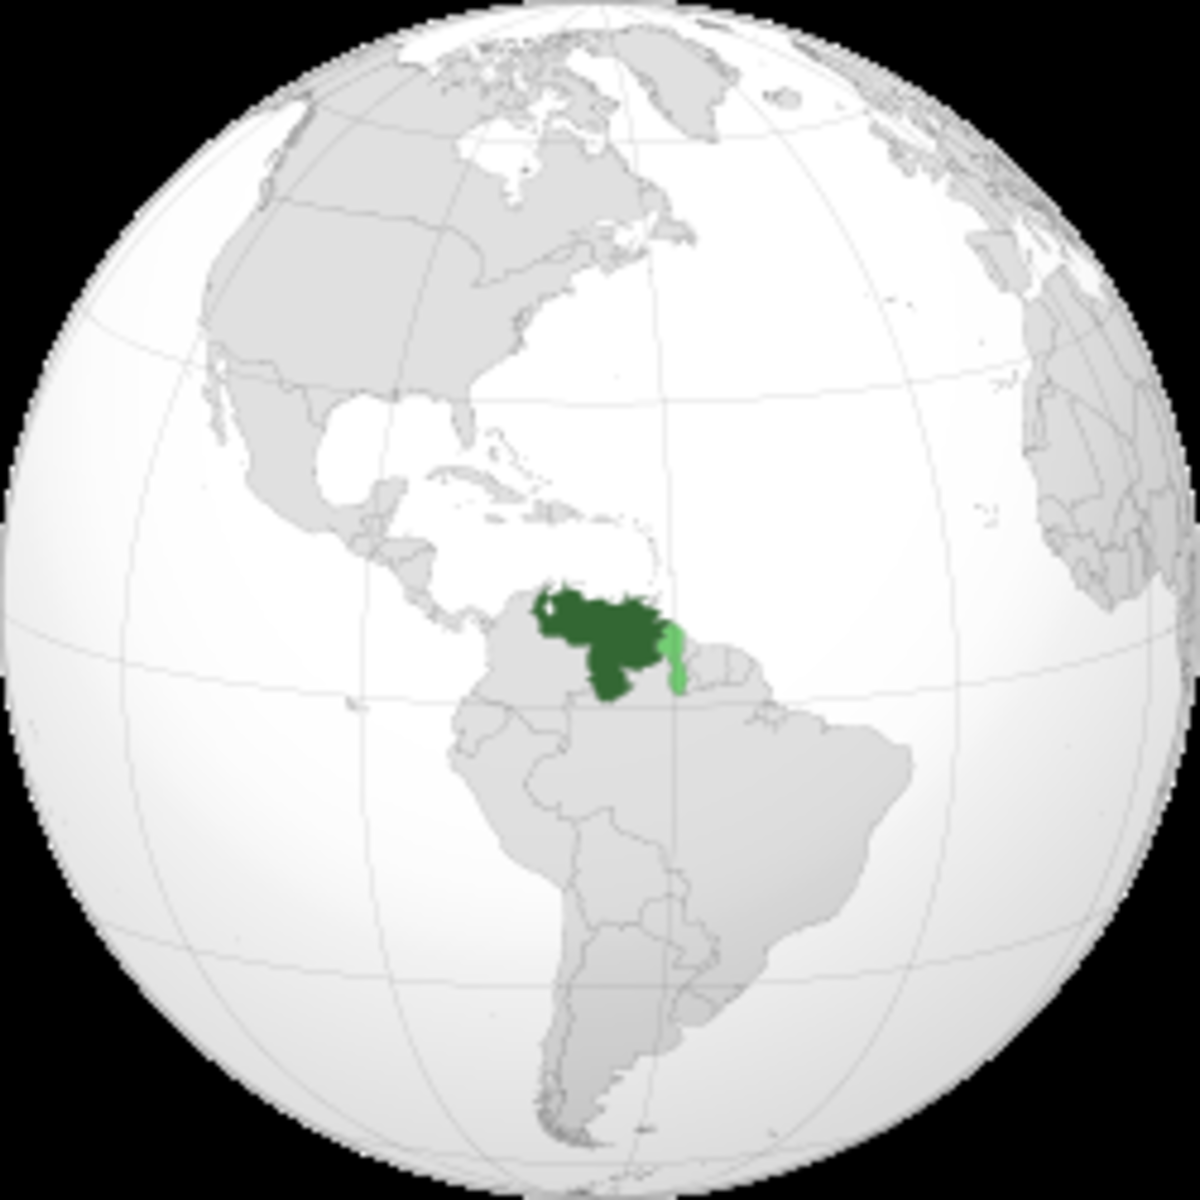 Map showing Venezuela